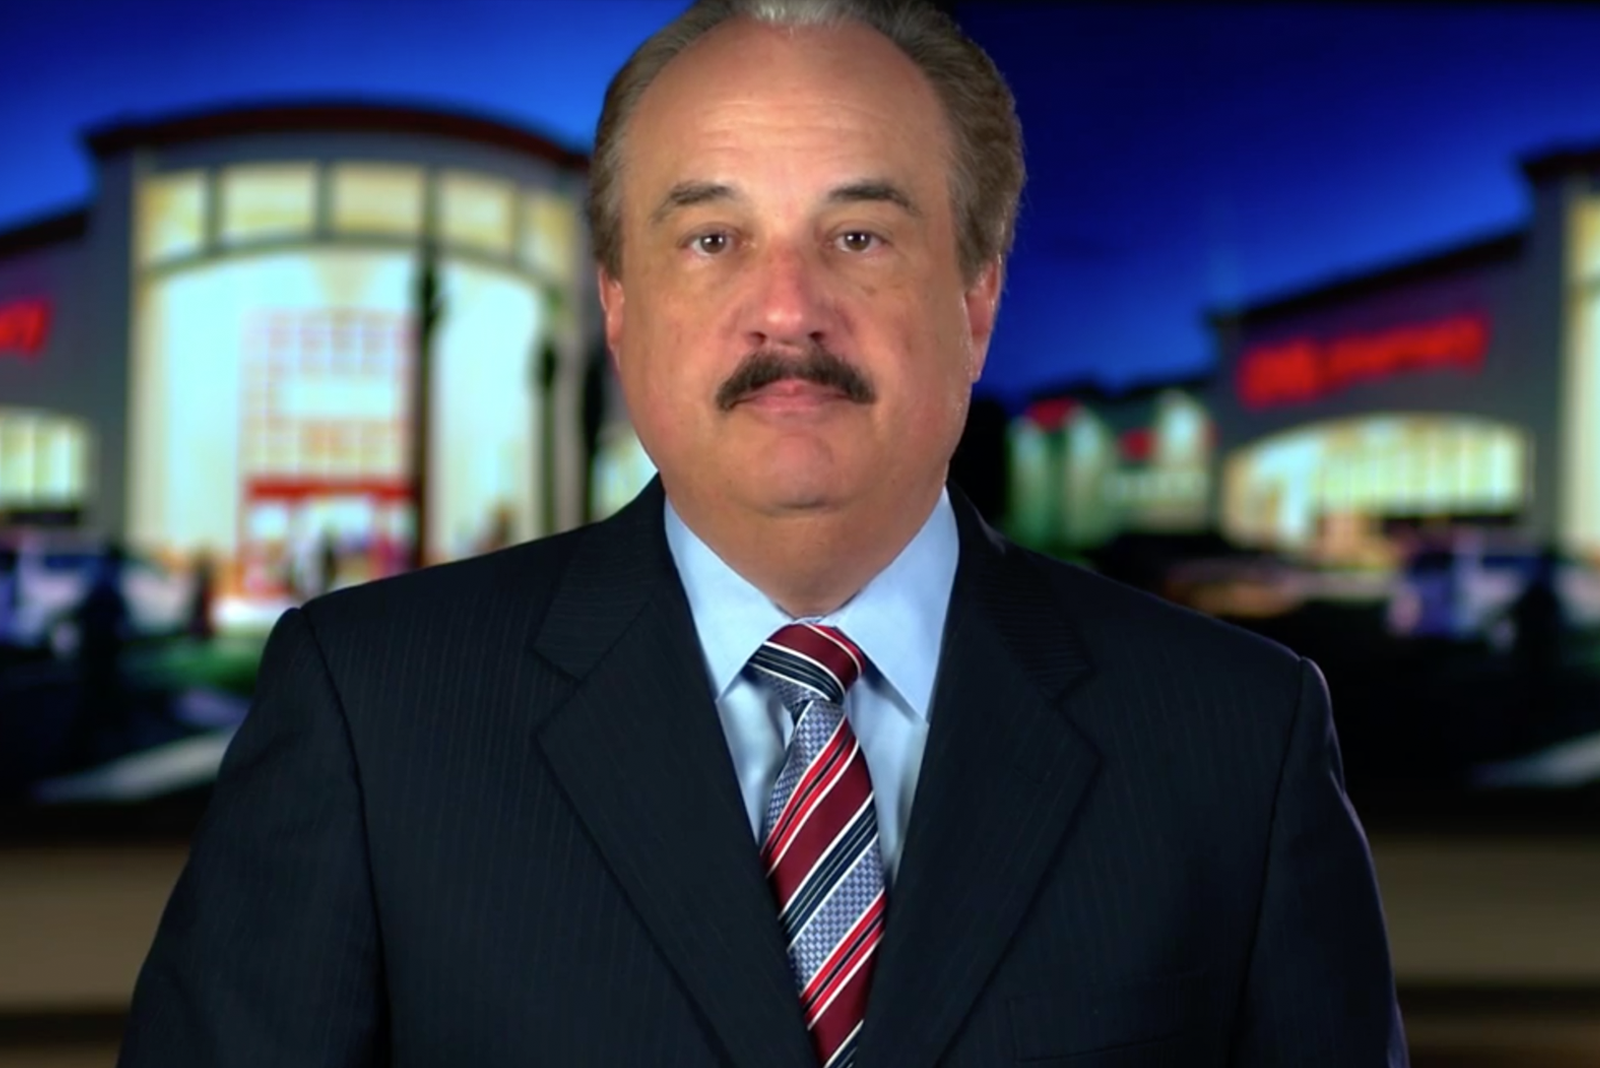 CEO Larry Merlo